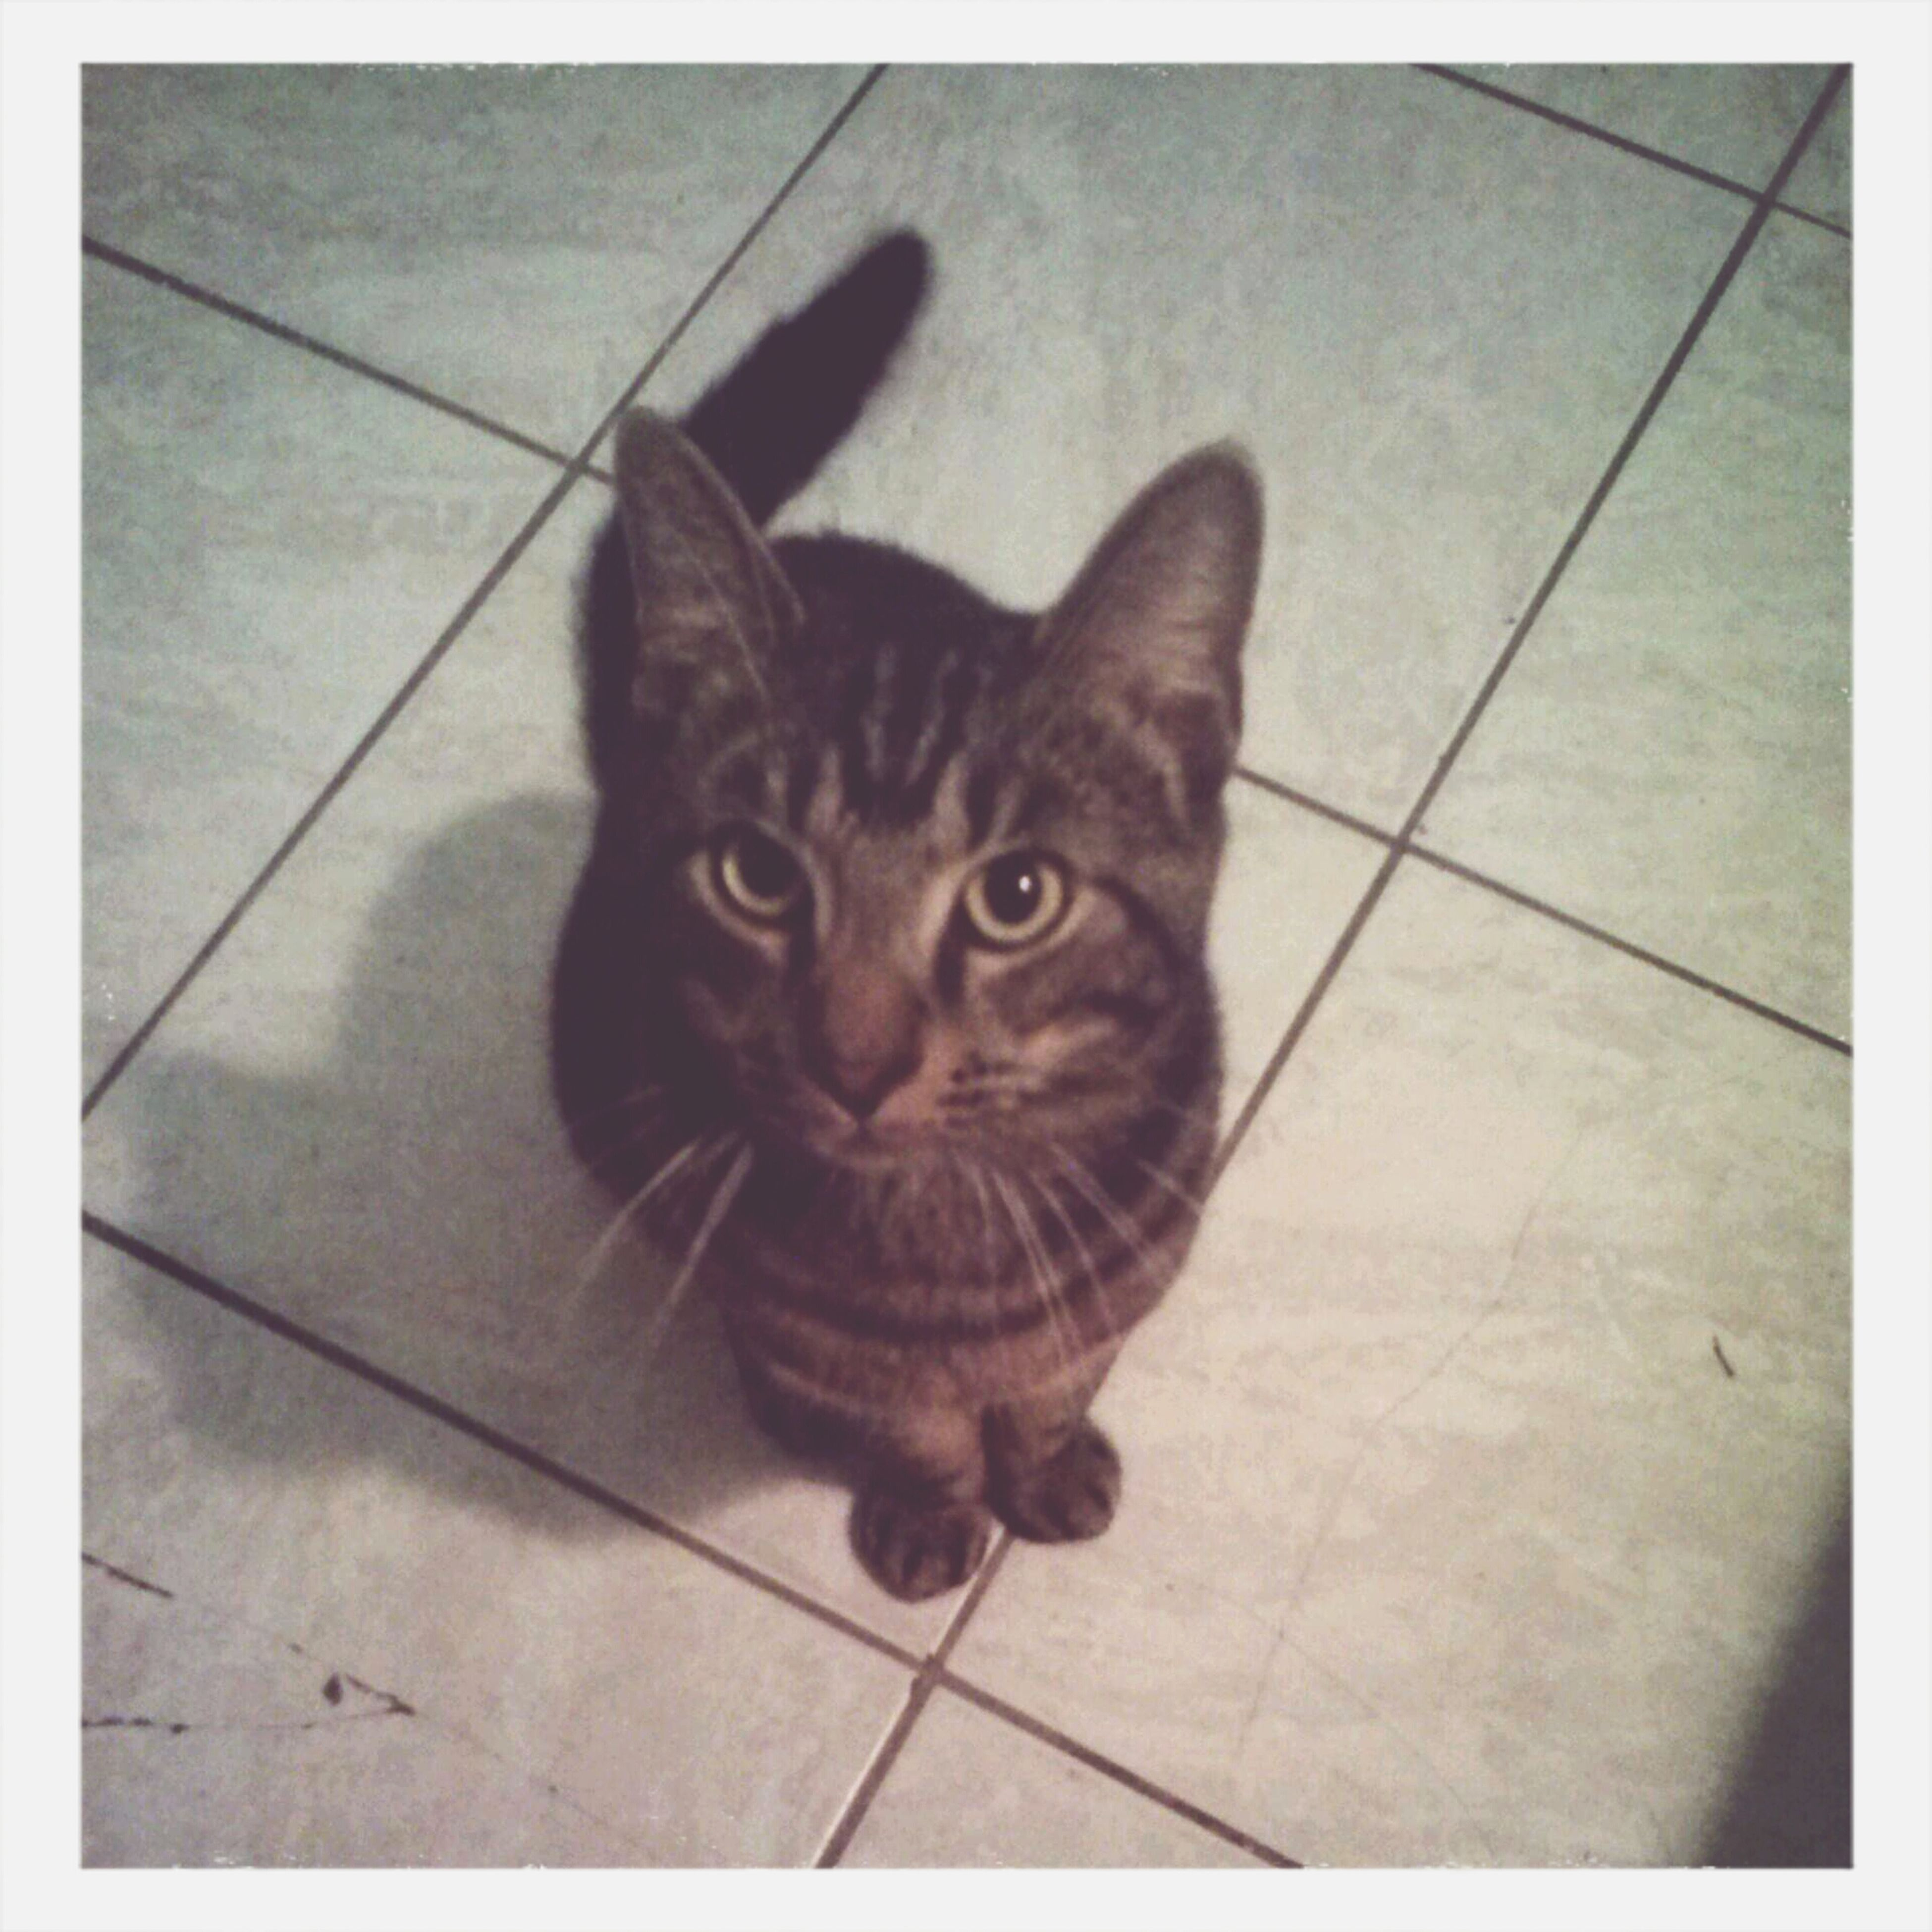 pets, animal themes, domestic cat, one animal, domestic animals, cat, mammal, transfer print, feline, indoors, looking at camera, portrait, high angle view, auto post production filter, tiled floor, whisker, flooring, sitting, staring, alertness